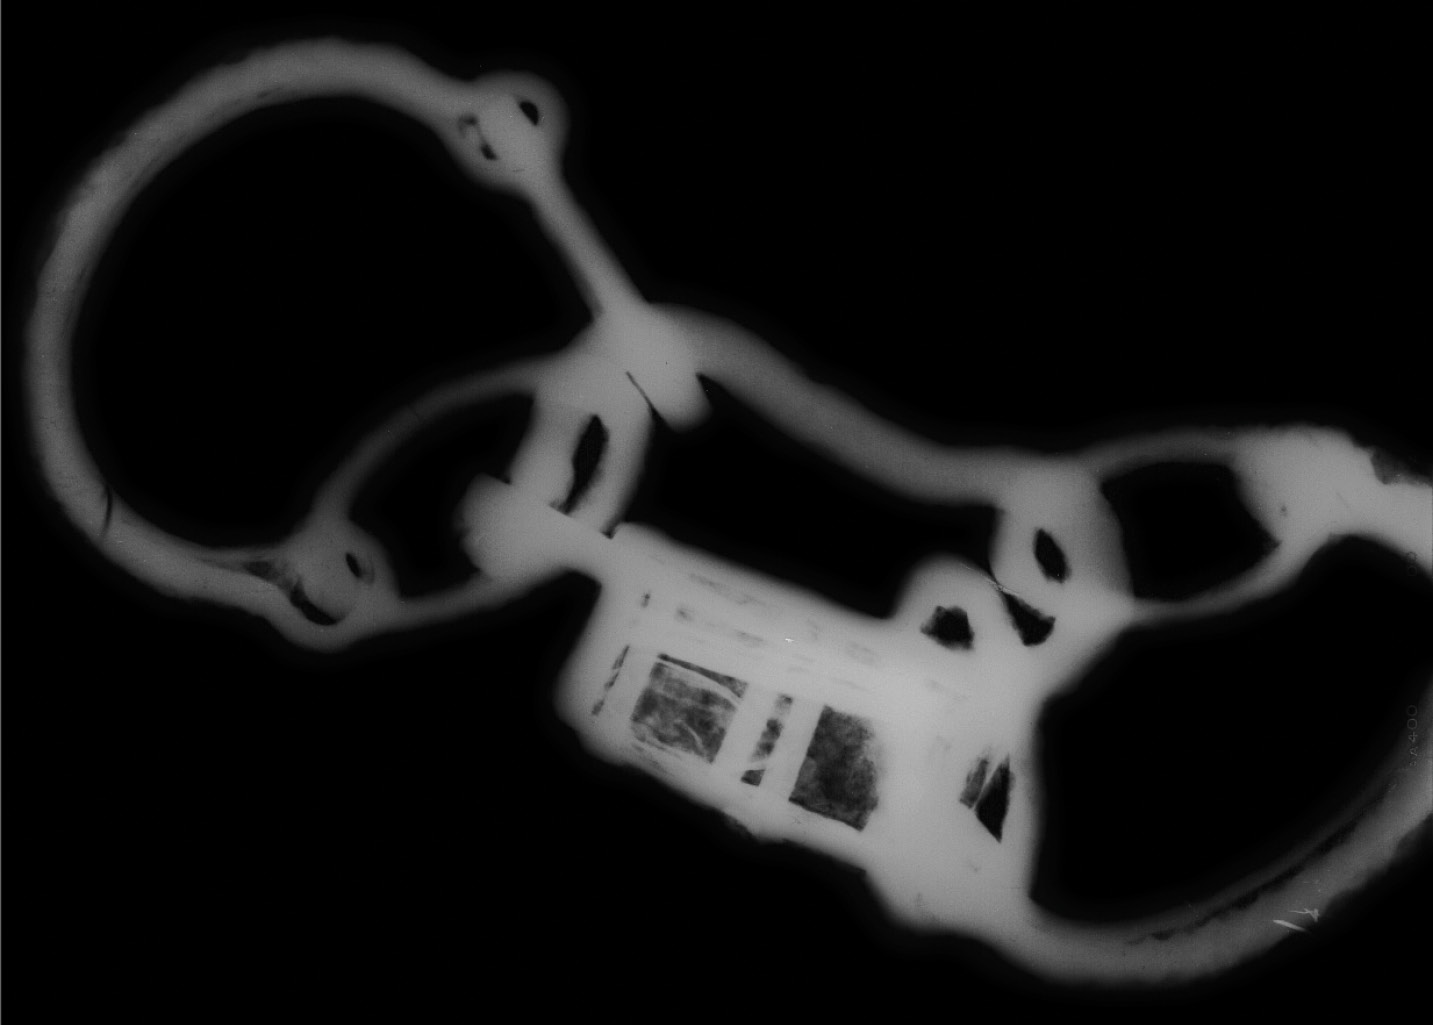 BELOW The fetters and their padlock were very corroded, but X-ray imagery reveals some of their details. They would have allowed their wearer to shuffle slowly, permitting work but preventing running away.